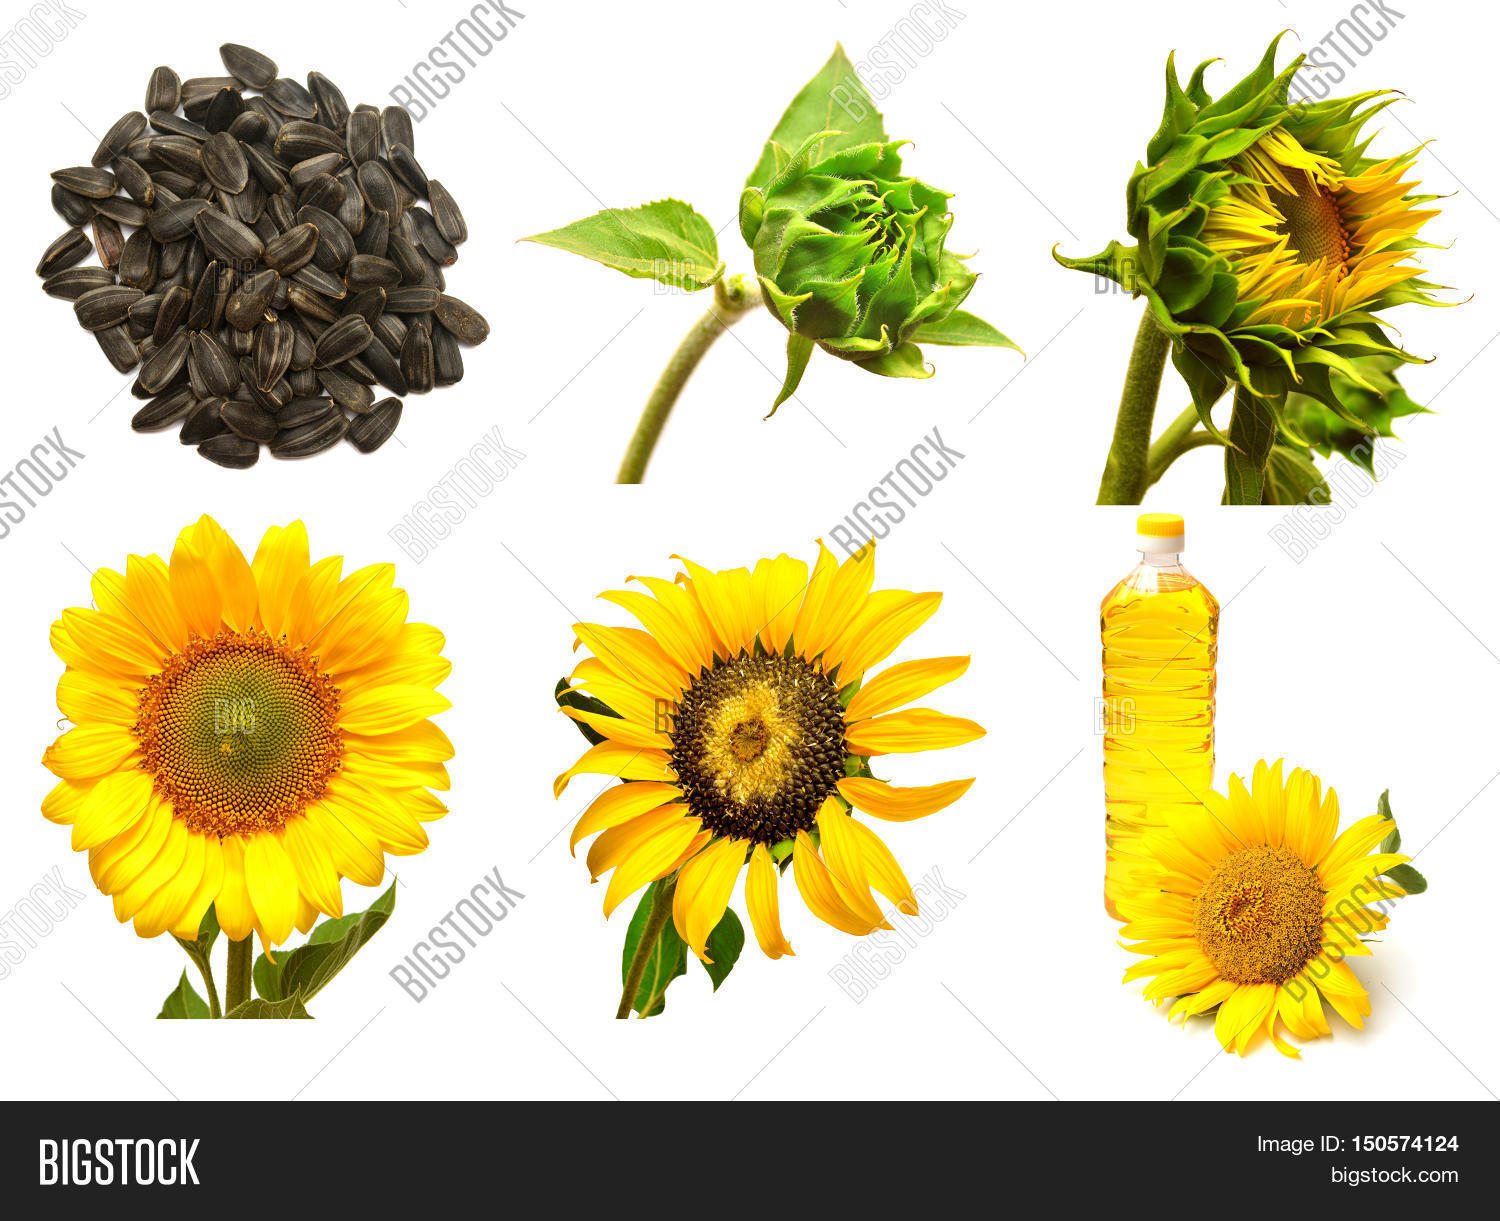 Collection of sunflower isolated on white background. Stages of growth of  sunflower. Seeds sunflower